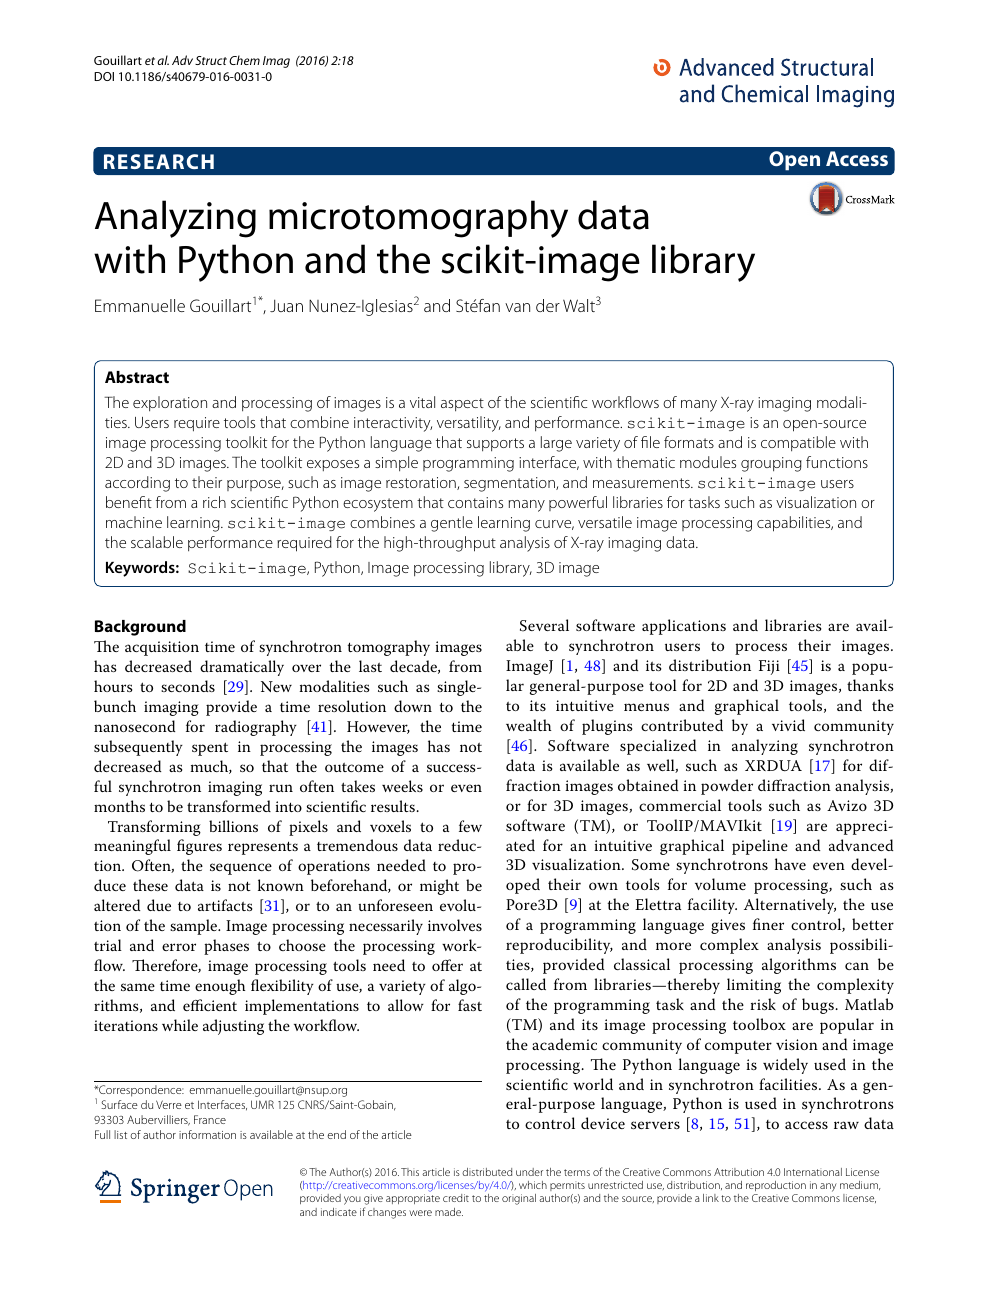 Analyzing microtomography data with Python and the scikit